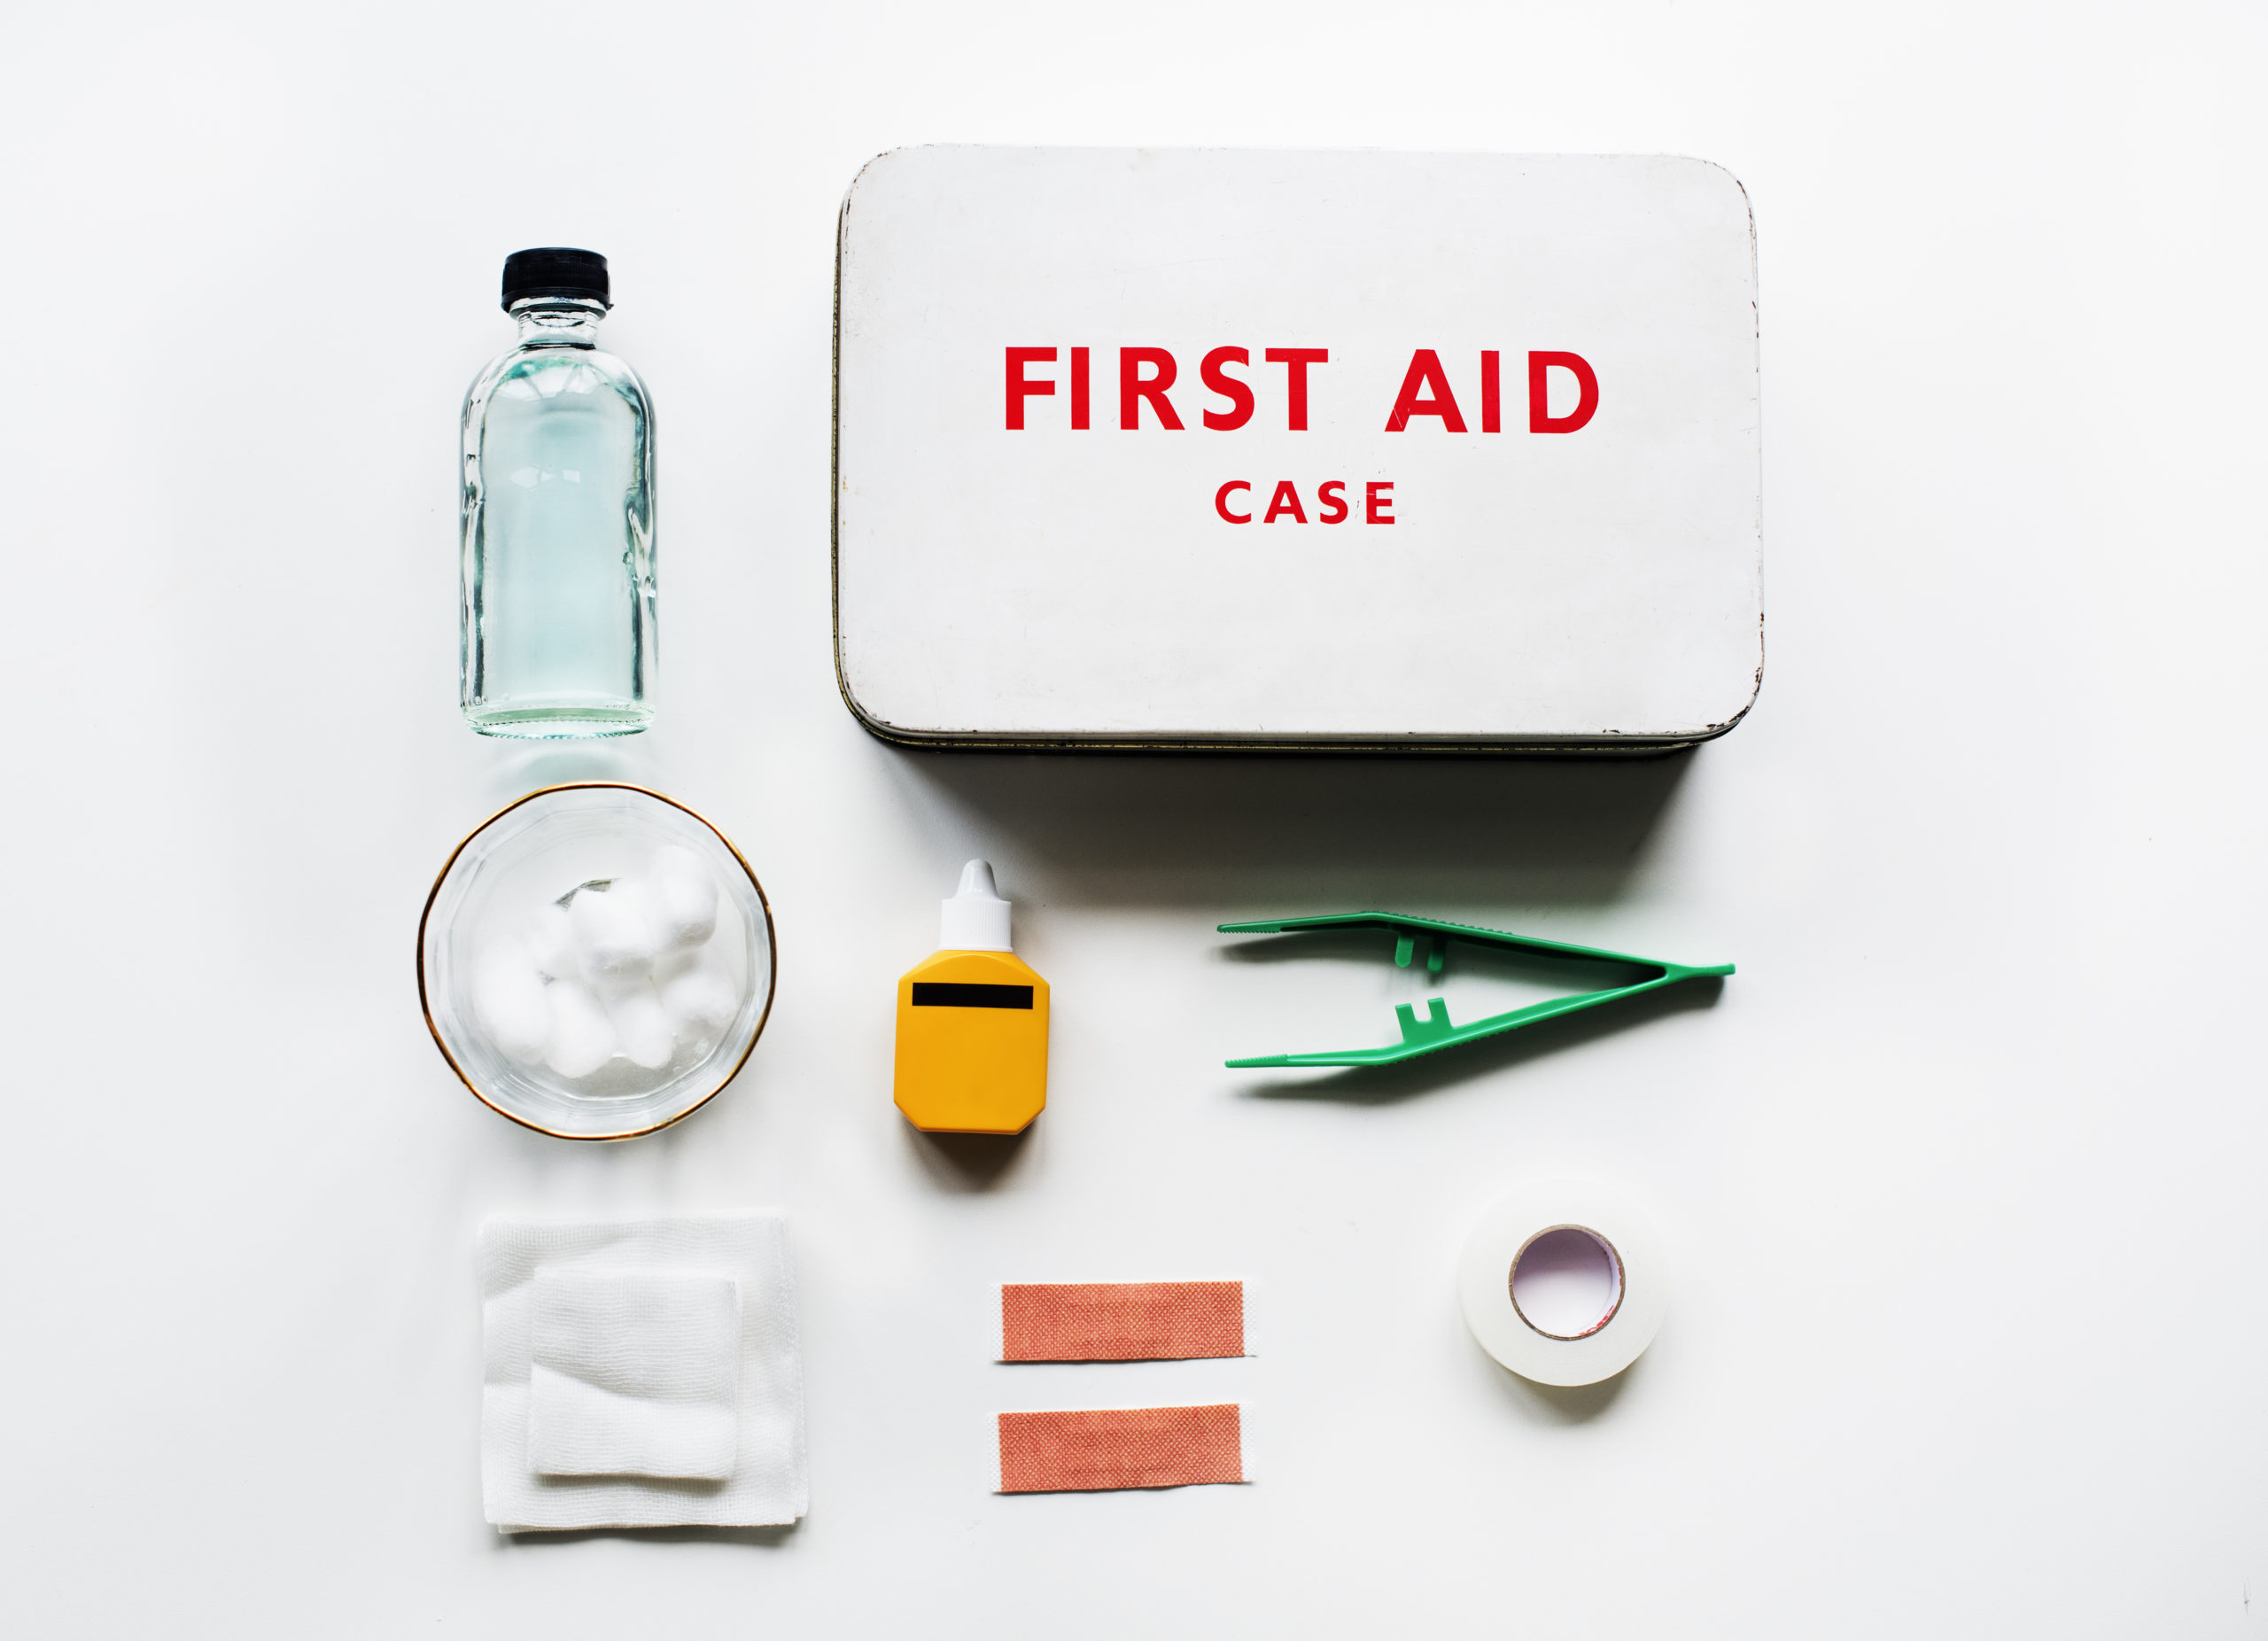 Your First Aid Kit: What do you need for your workplace?